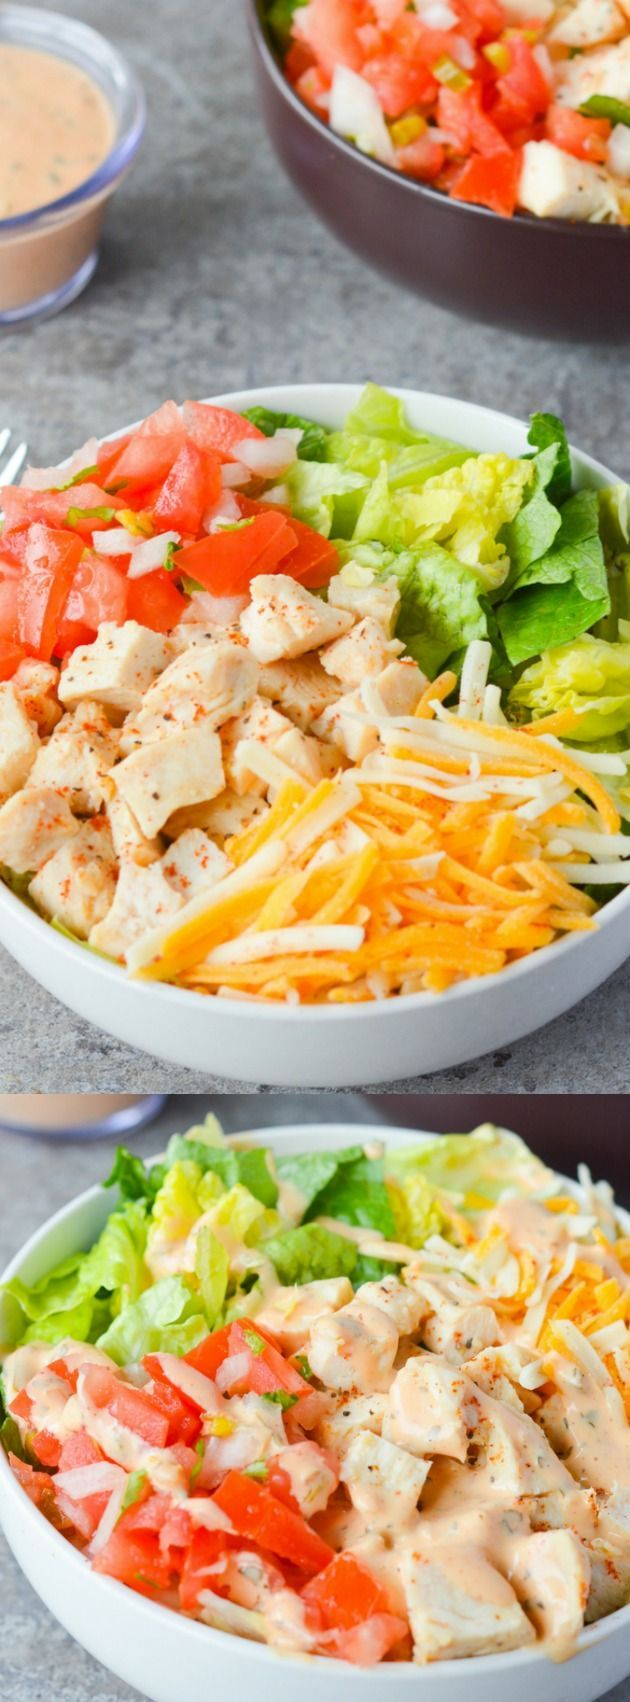 This Southwest Chicken Salad from Hey Keto Mama is an all time favorite. It's crisp, refreshing, and has just the right amount of kick!